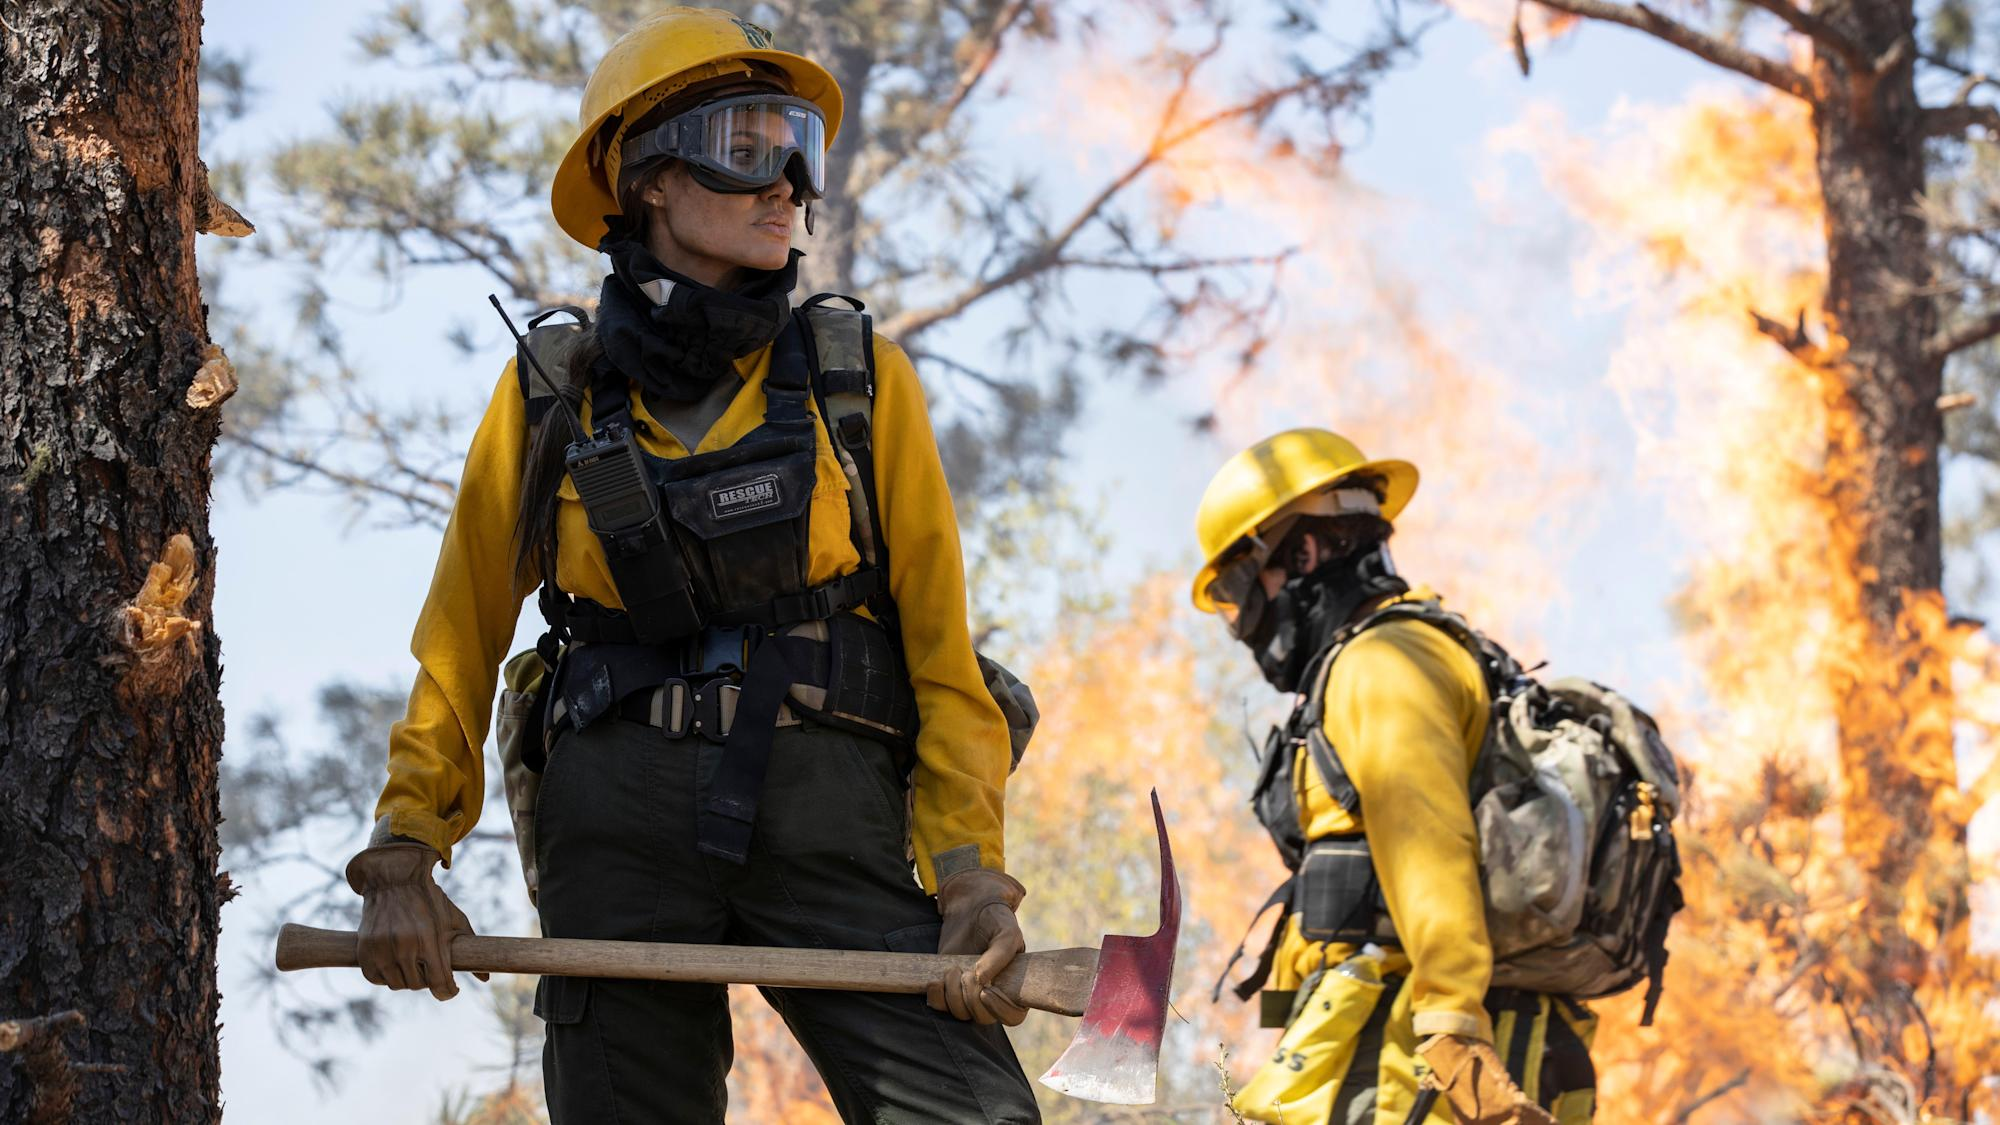 Angelina Jolie is a smokejumper in first Those Who Wish Me Dead trailer